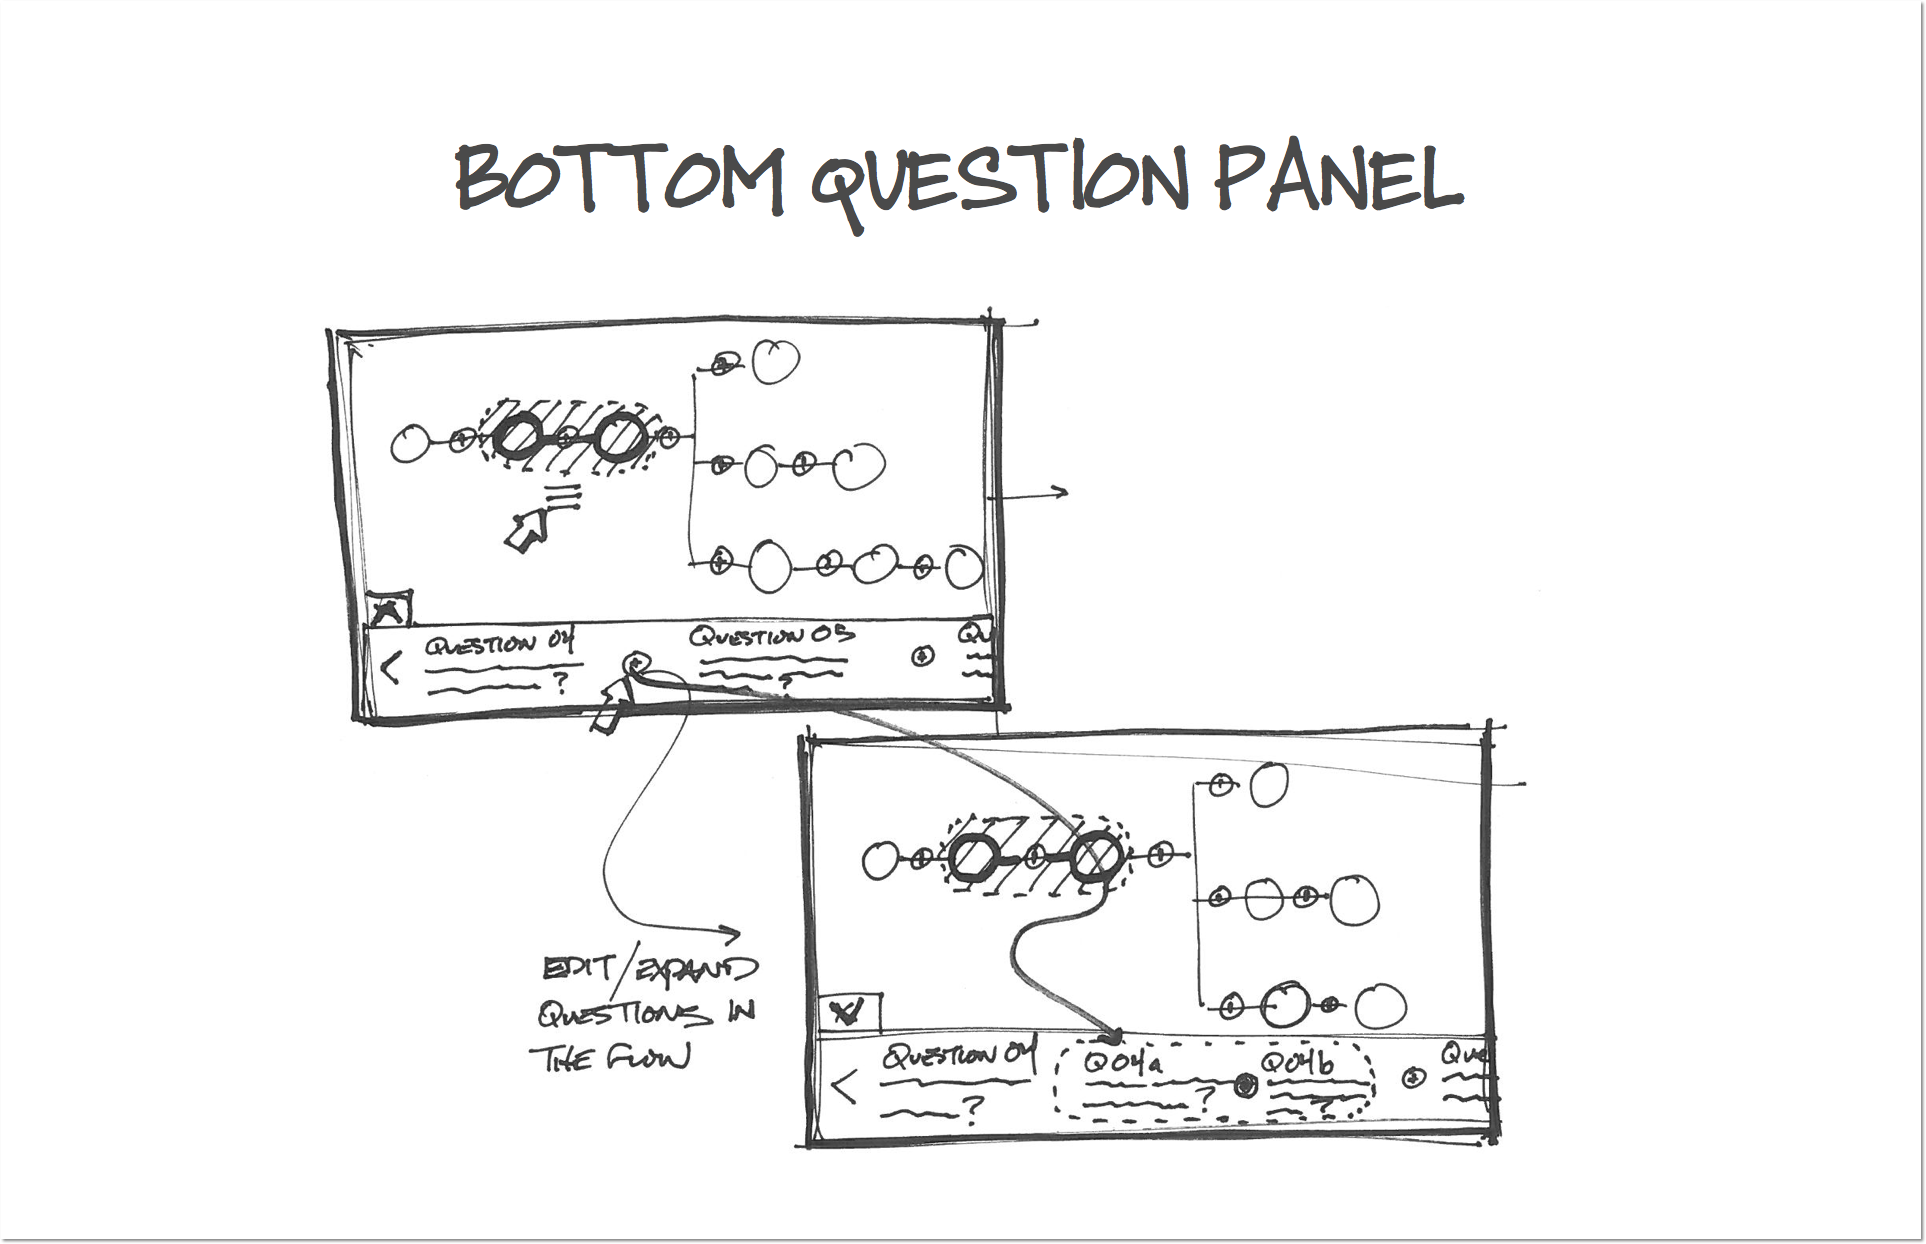 Questions+Panel+at+the+Bottom.png